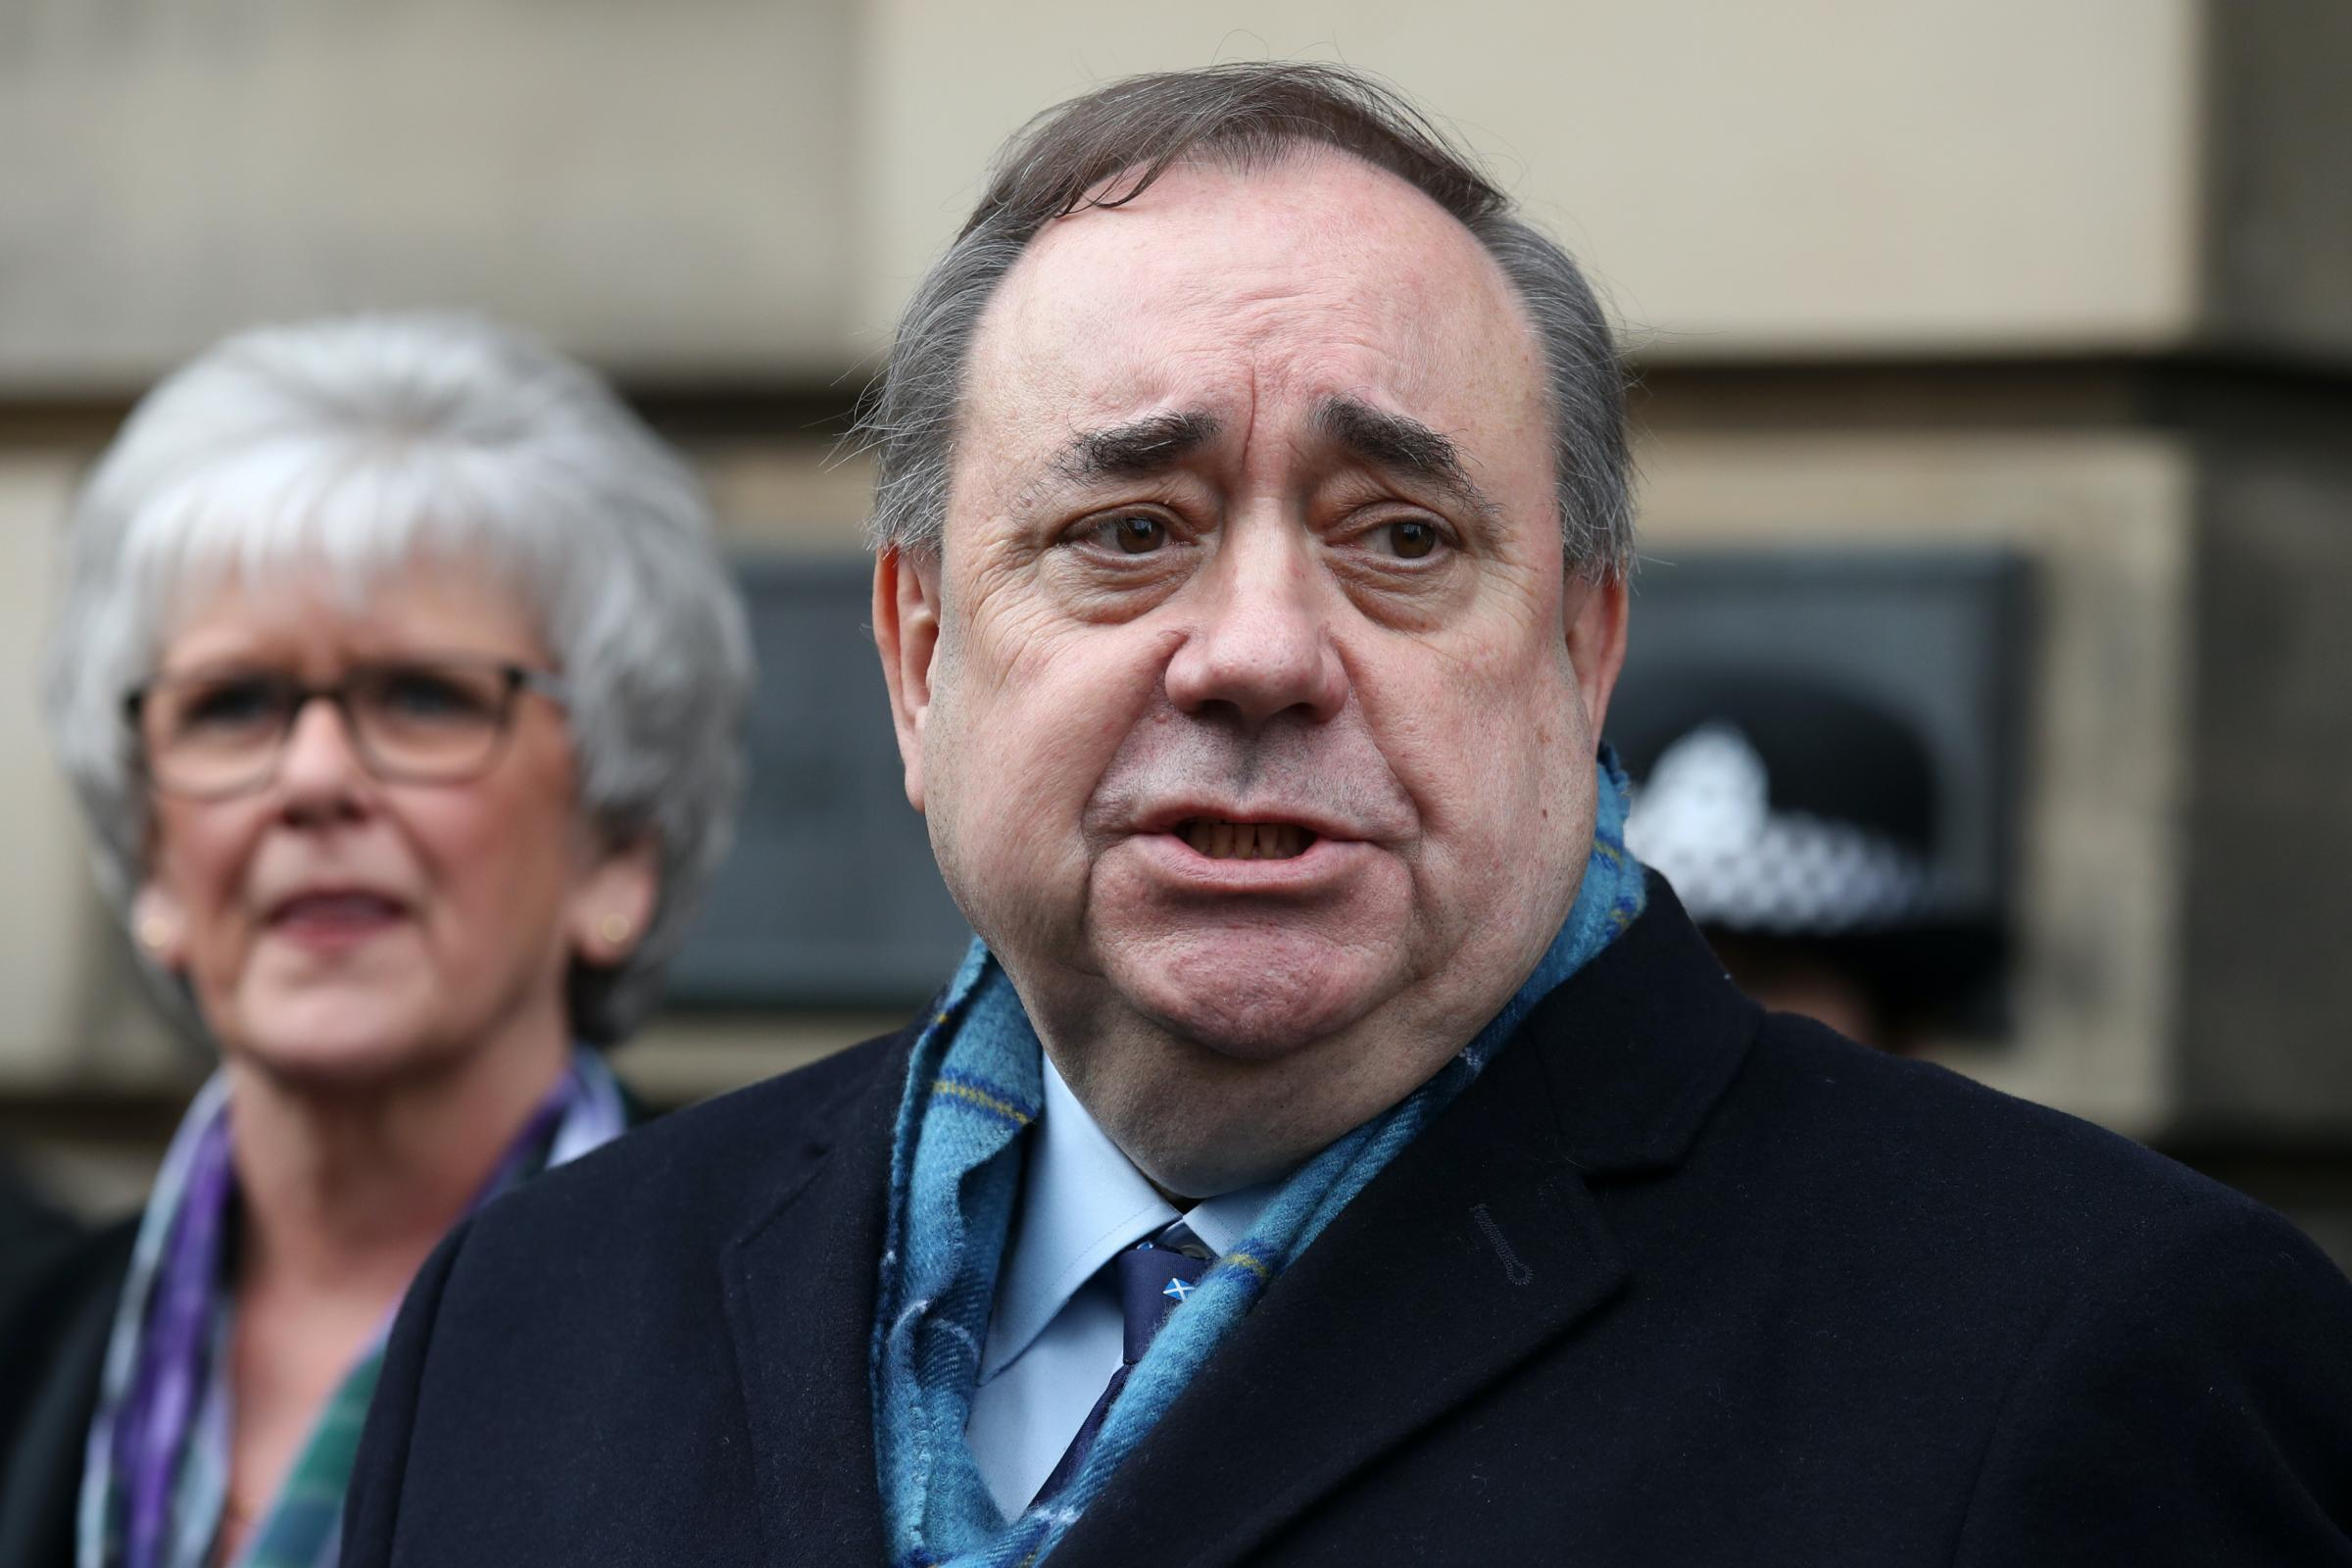 Nearly half of Yes voters would consider backing Alex Salmond party